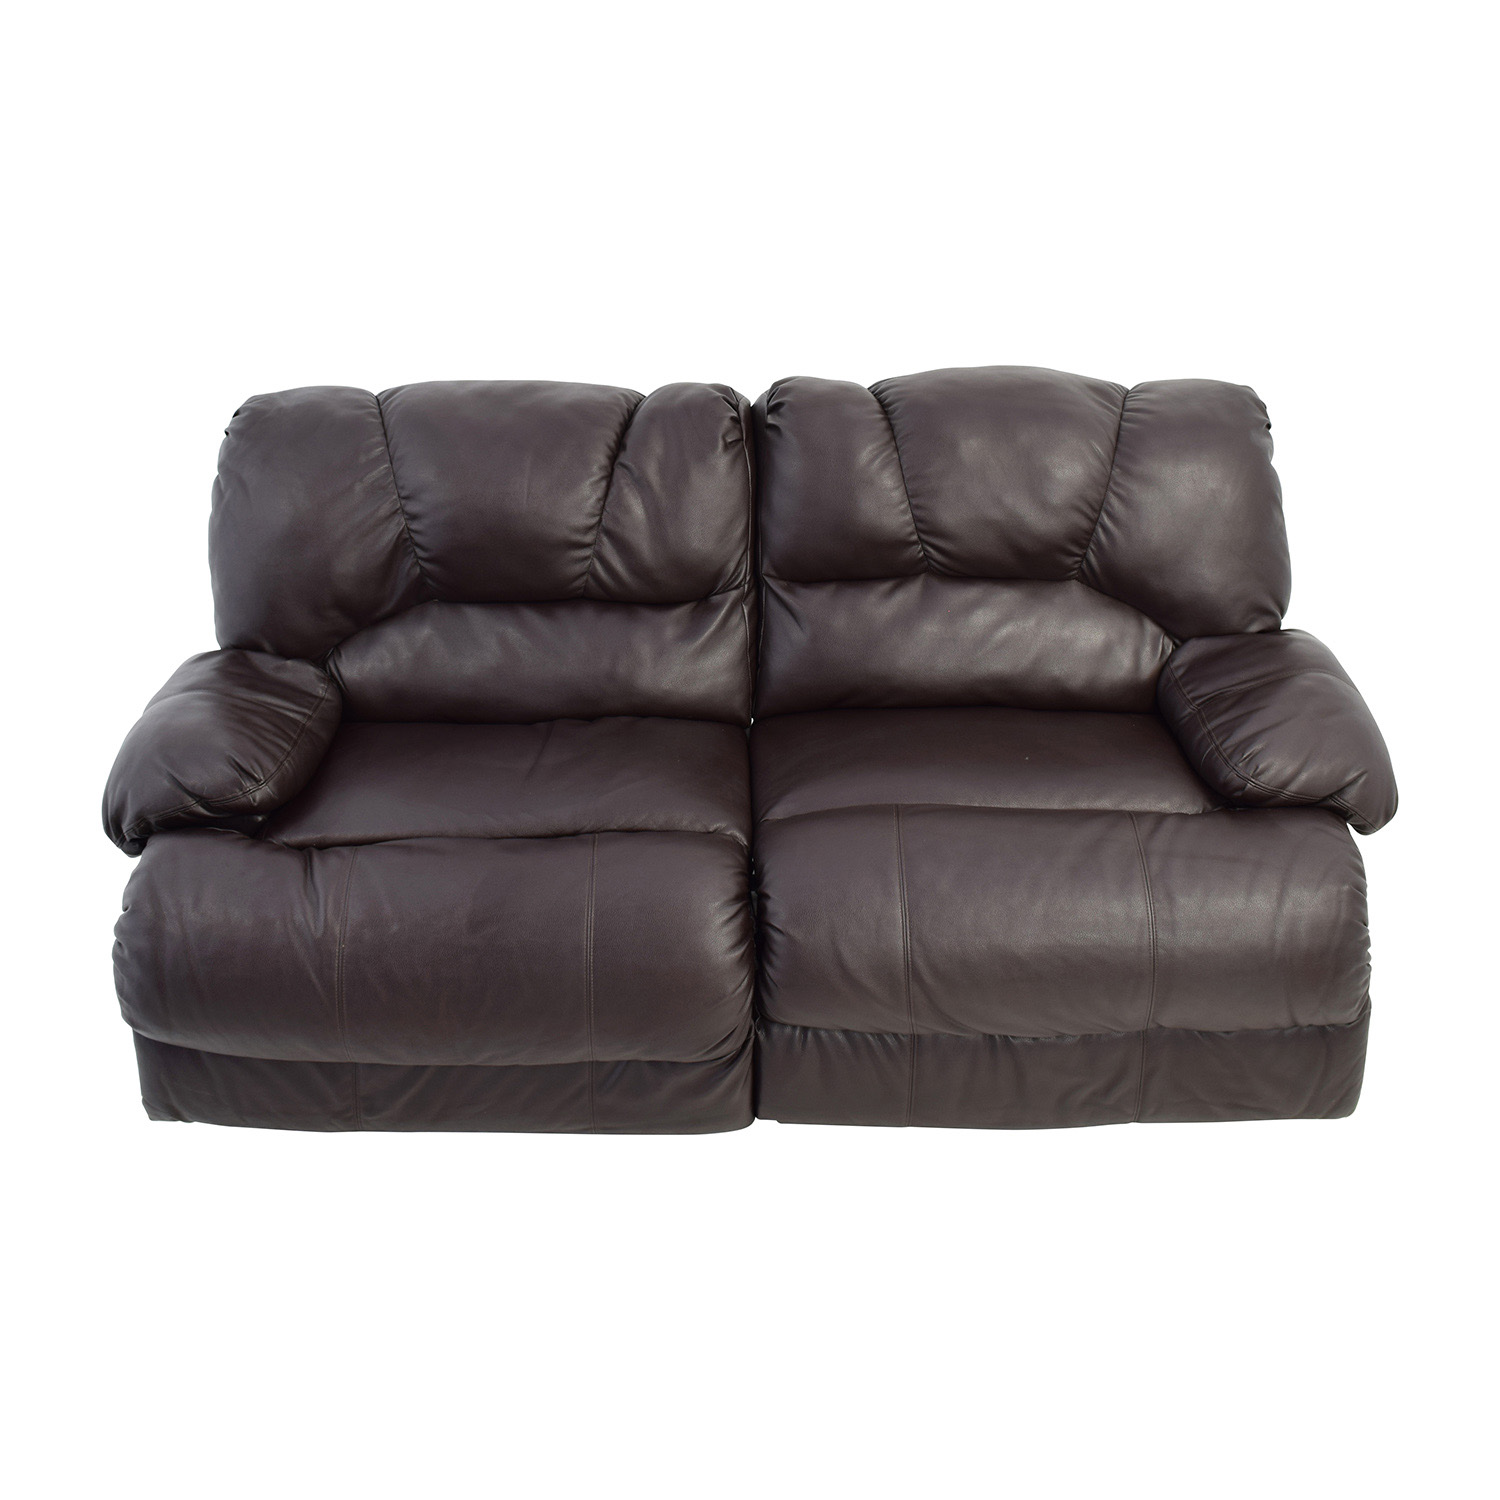 Nebraska Furniture Mart Reclining Brown Leather Couch / Classic Sofas